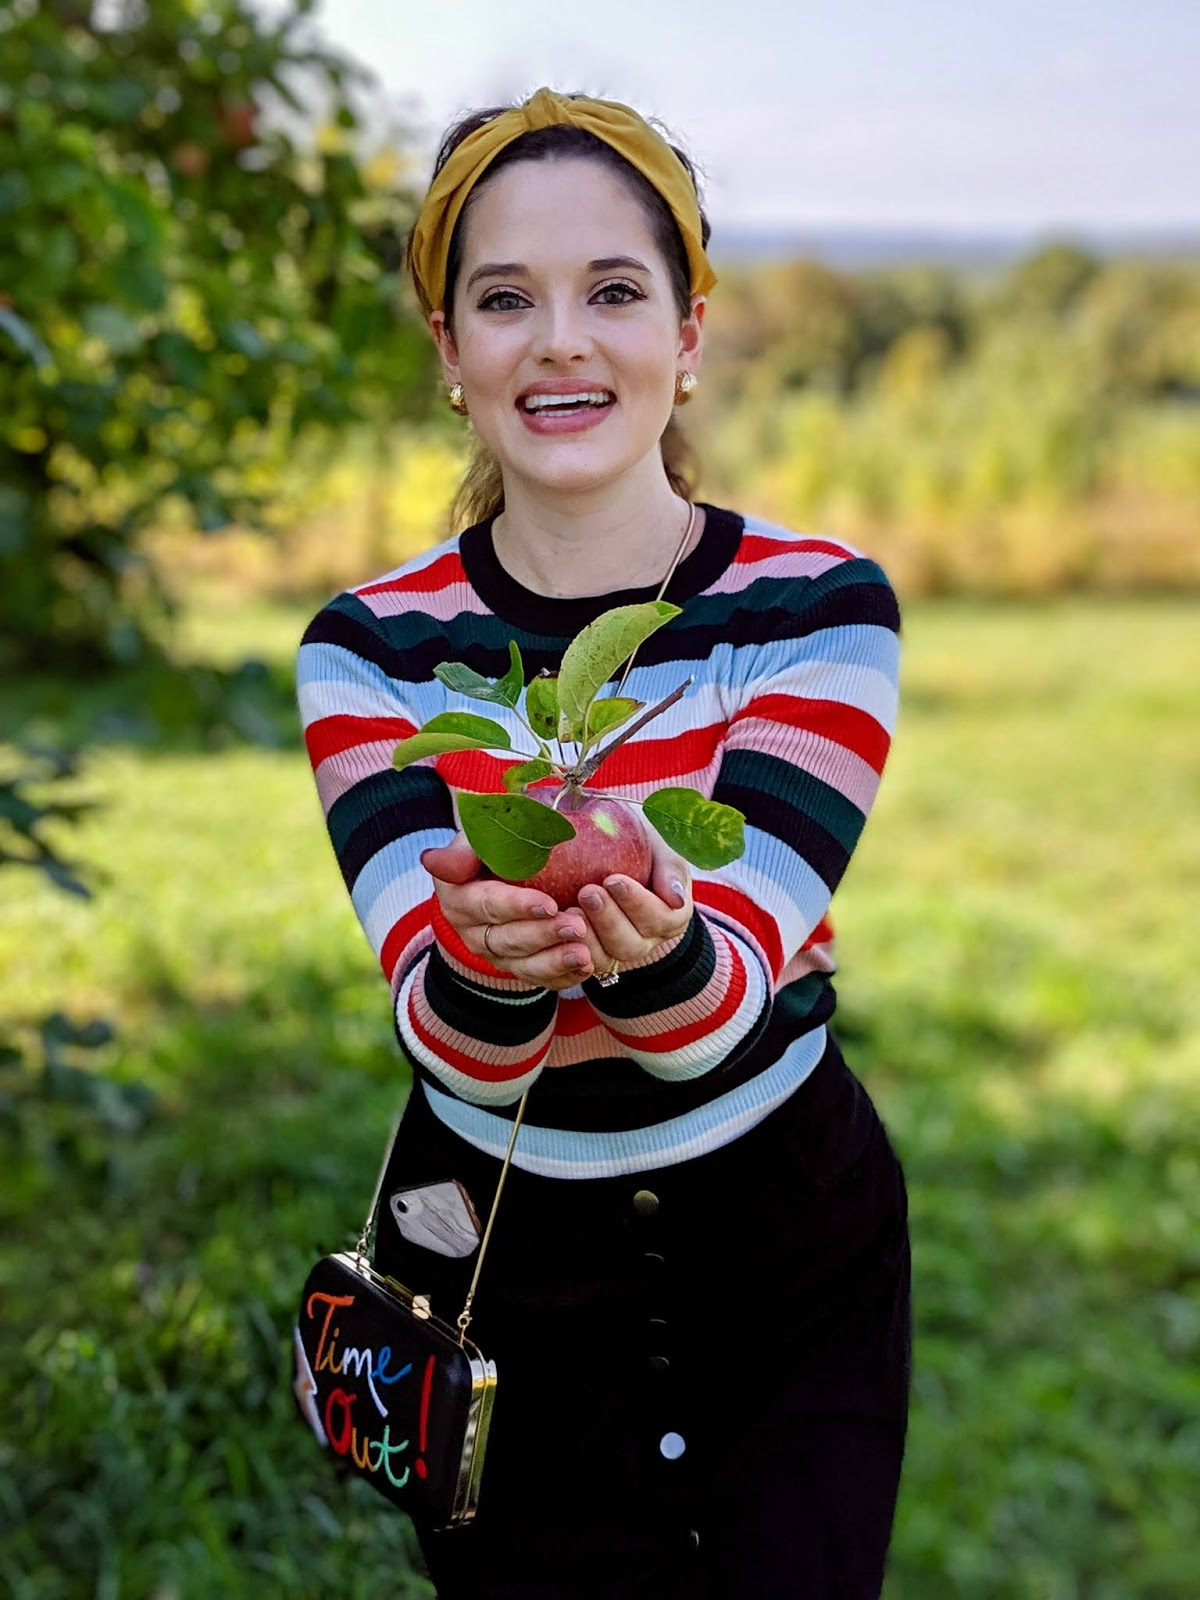 Nyc fashion blogger Kathleen Harper apple picking in the fall at Wilkens Fruit and Fir Farm.